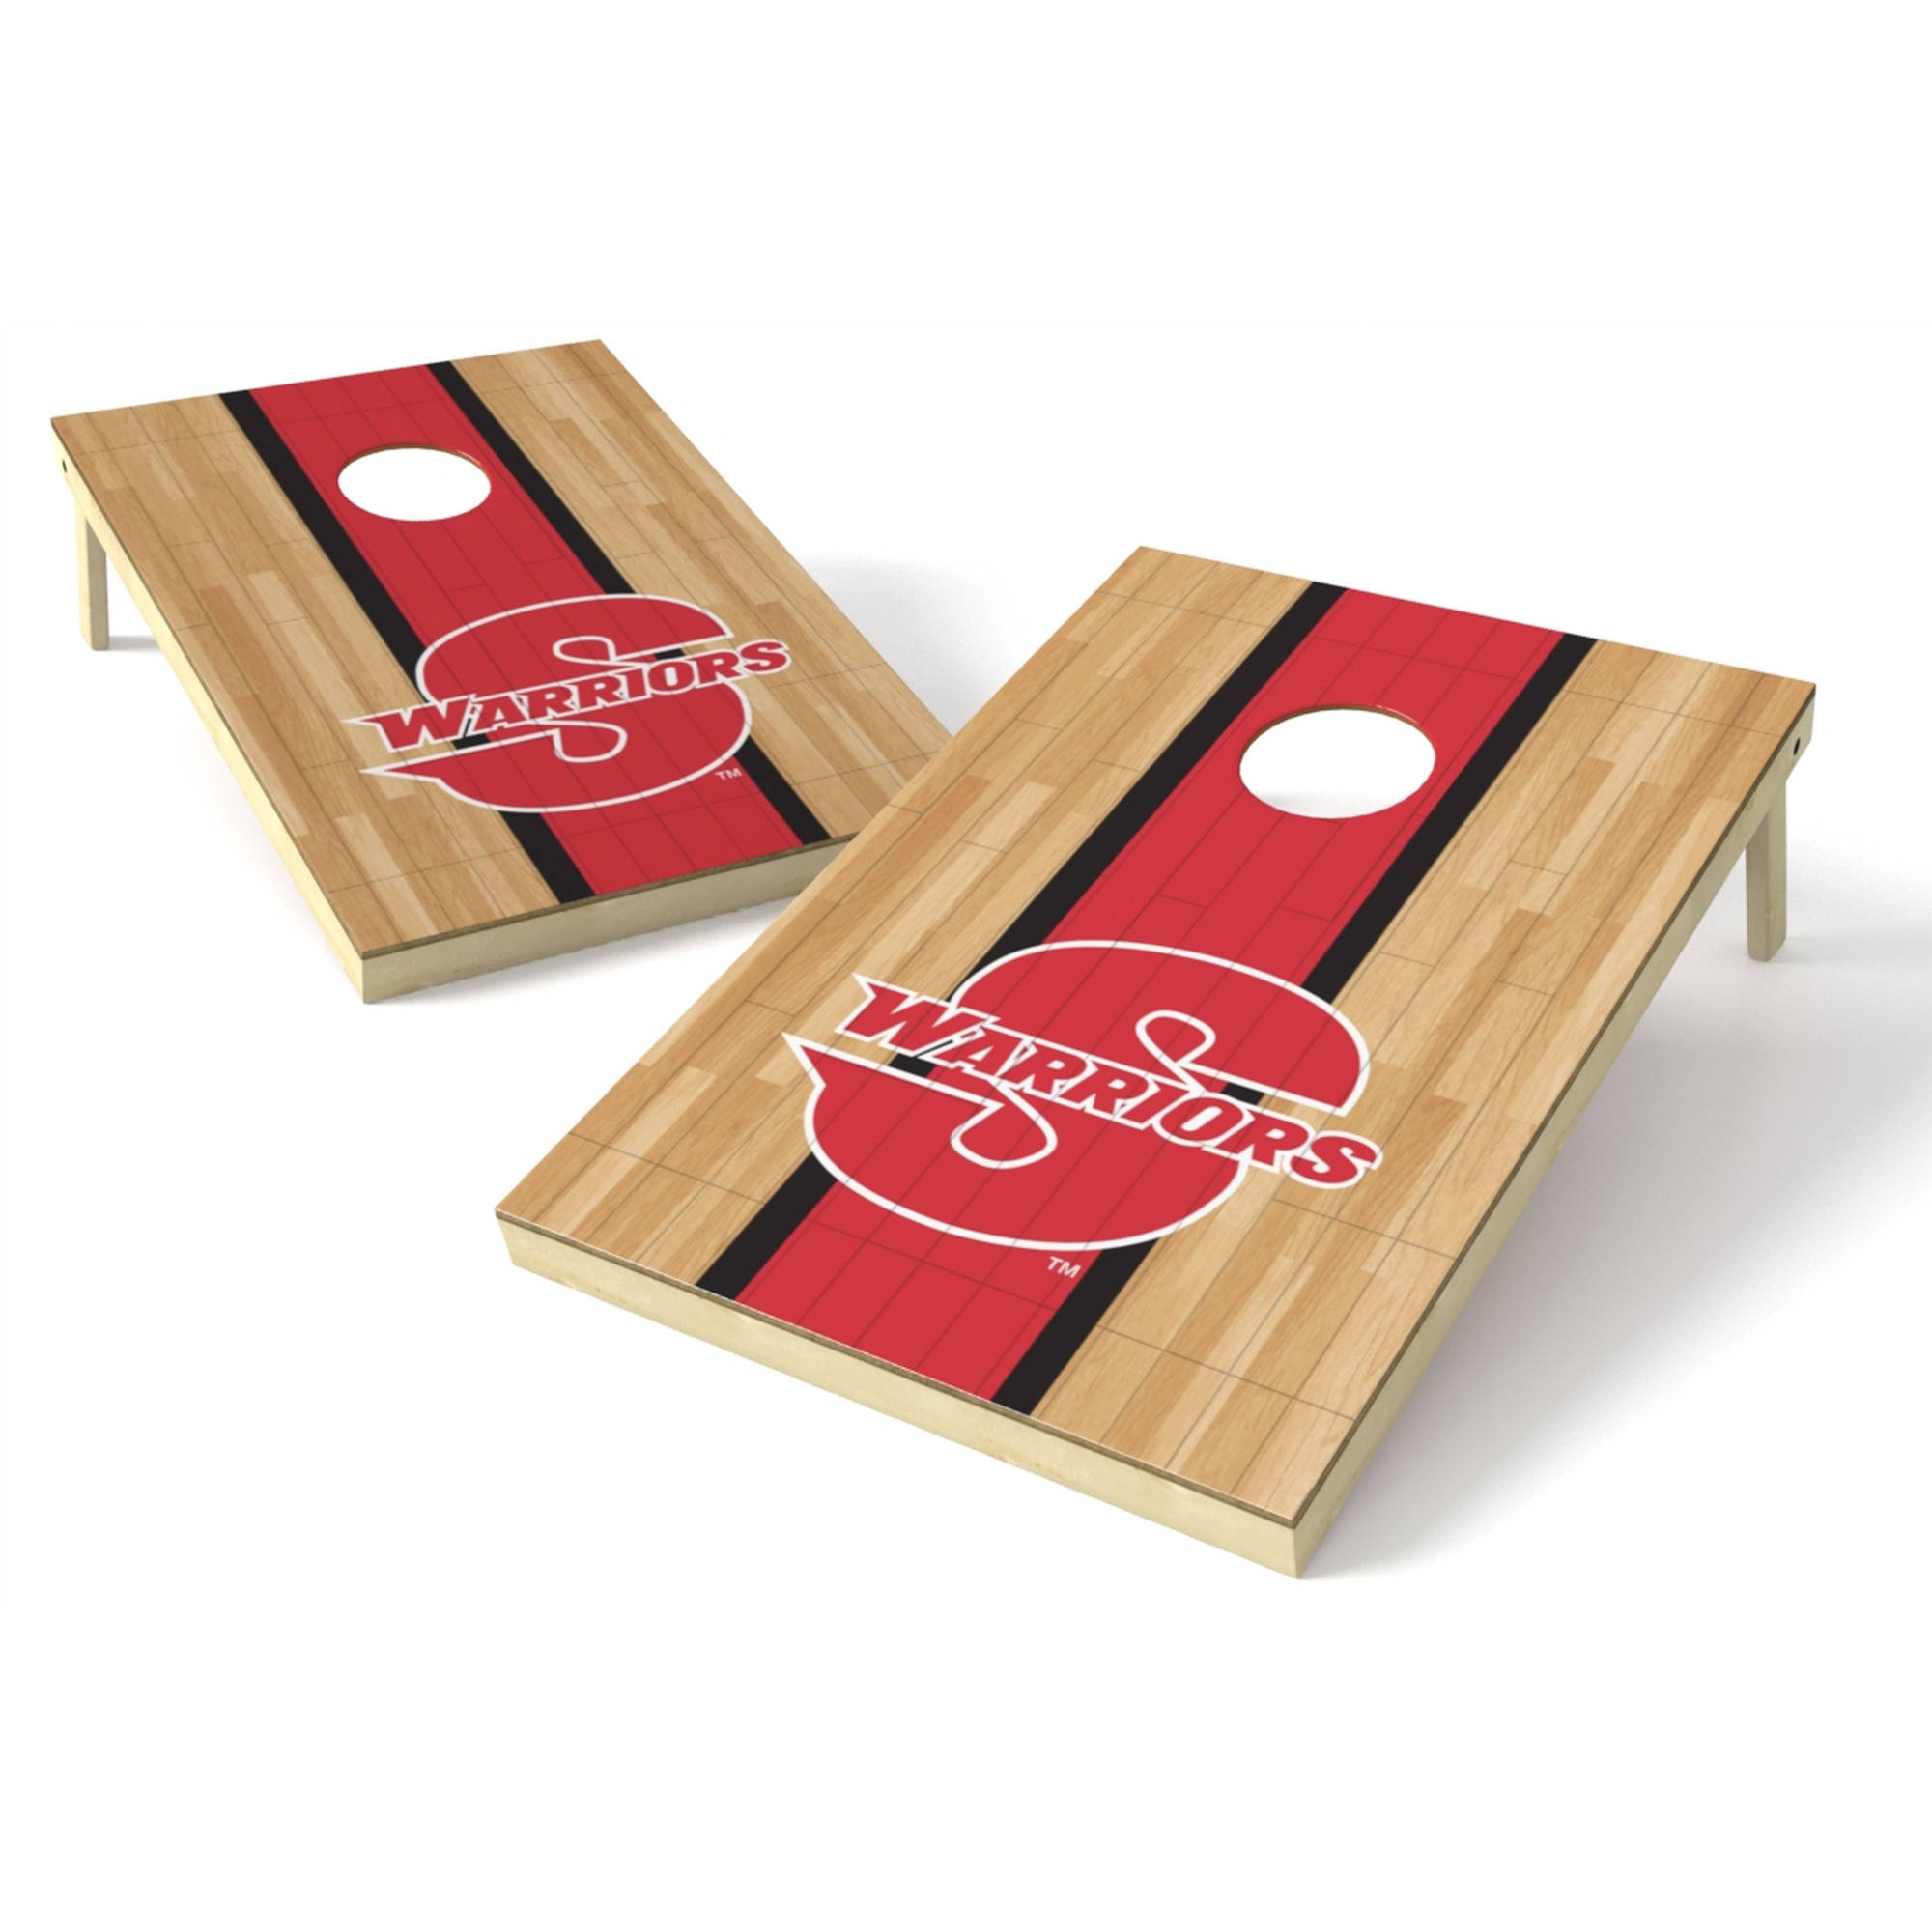 2x3 Shield Game, College by Wild Sports